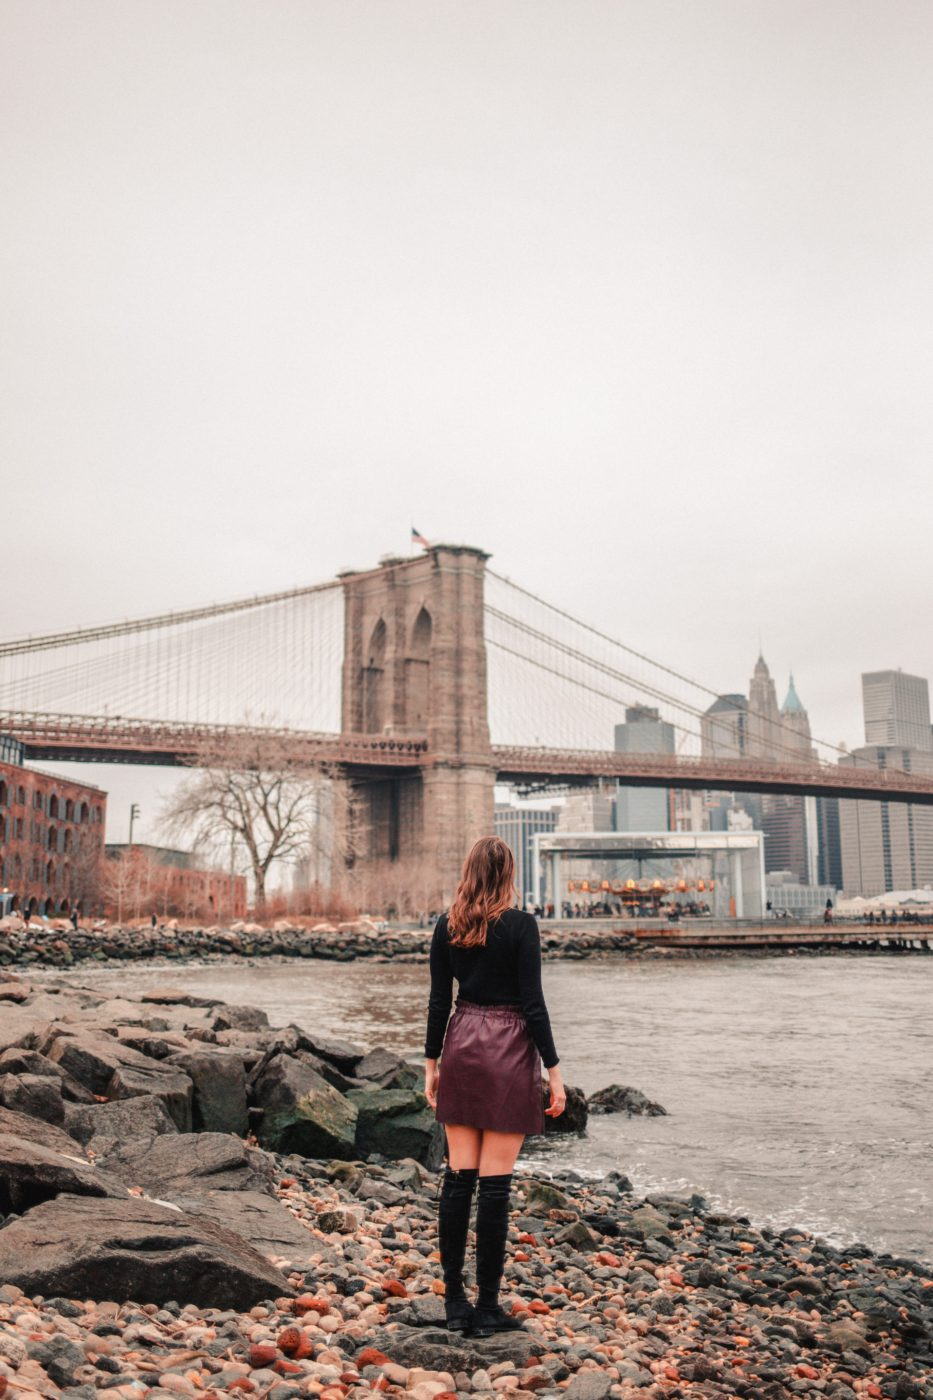 NYC Instagram Spots: Dumbo, Brooklyn